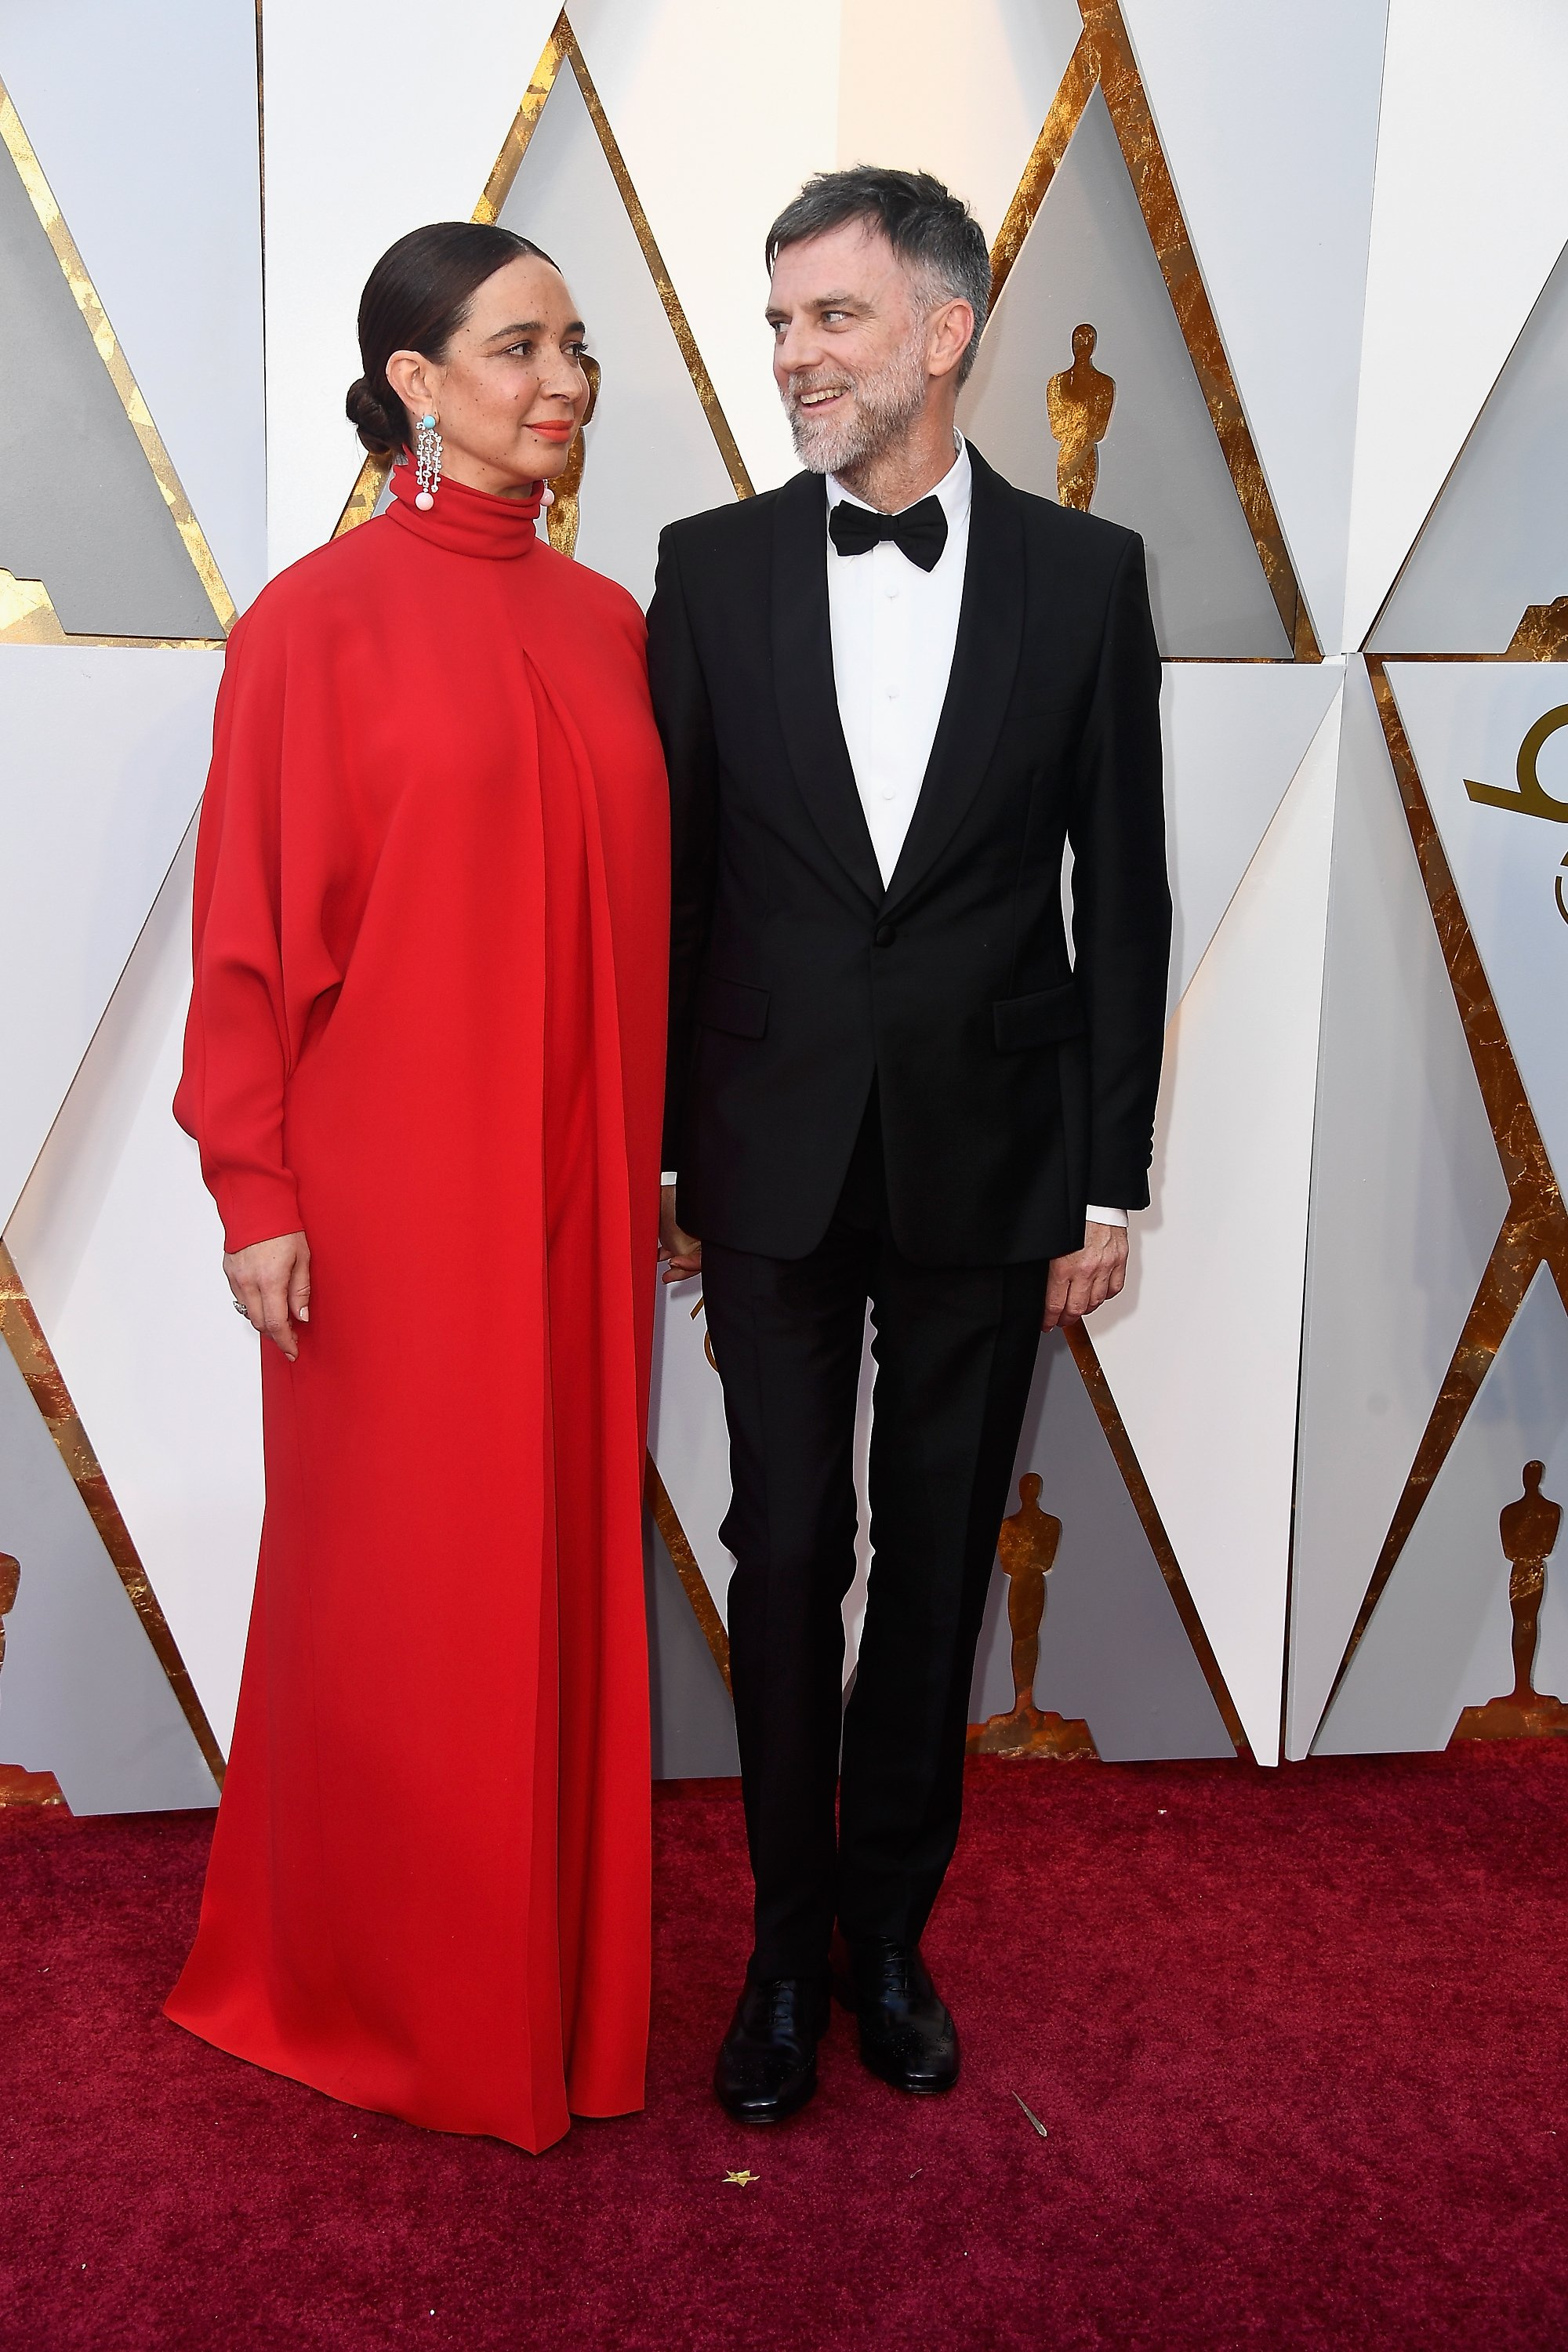 Maya Rudolph and Paul Thomas Anderson at the 90th Annual Academy Awards on March 4, 2018 in Hollywood, California   Photo: Getty Images